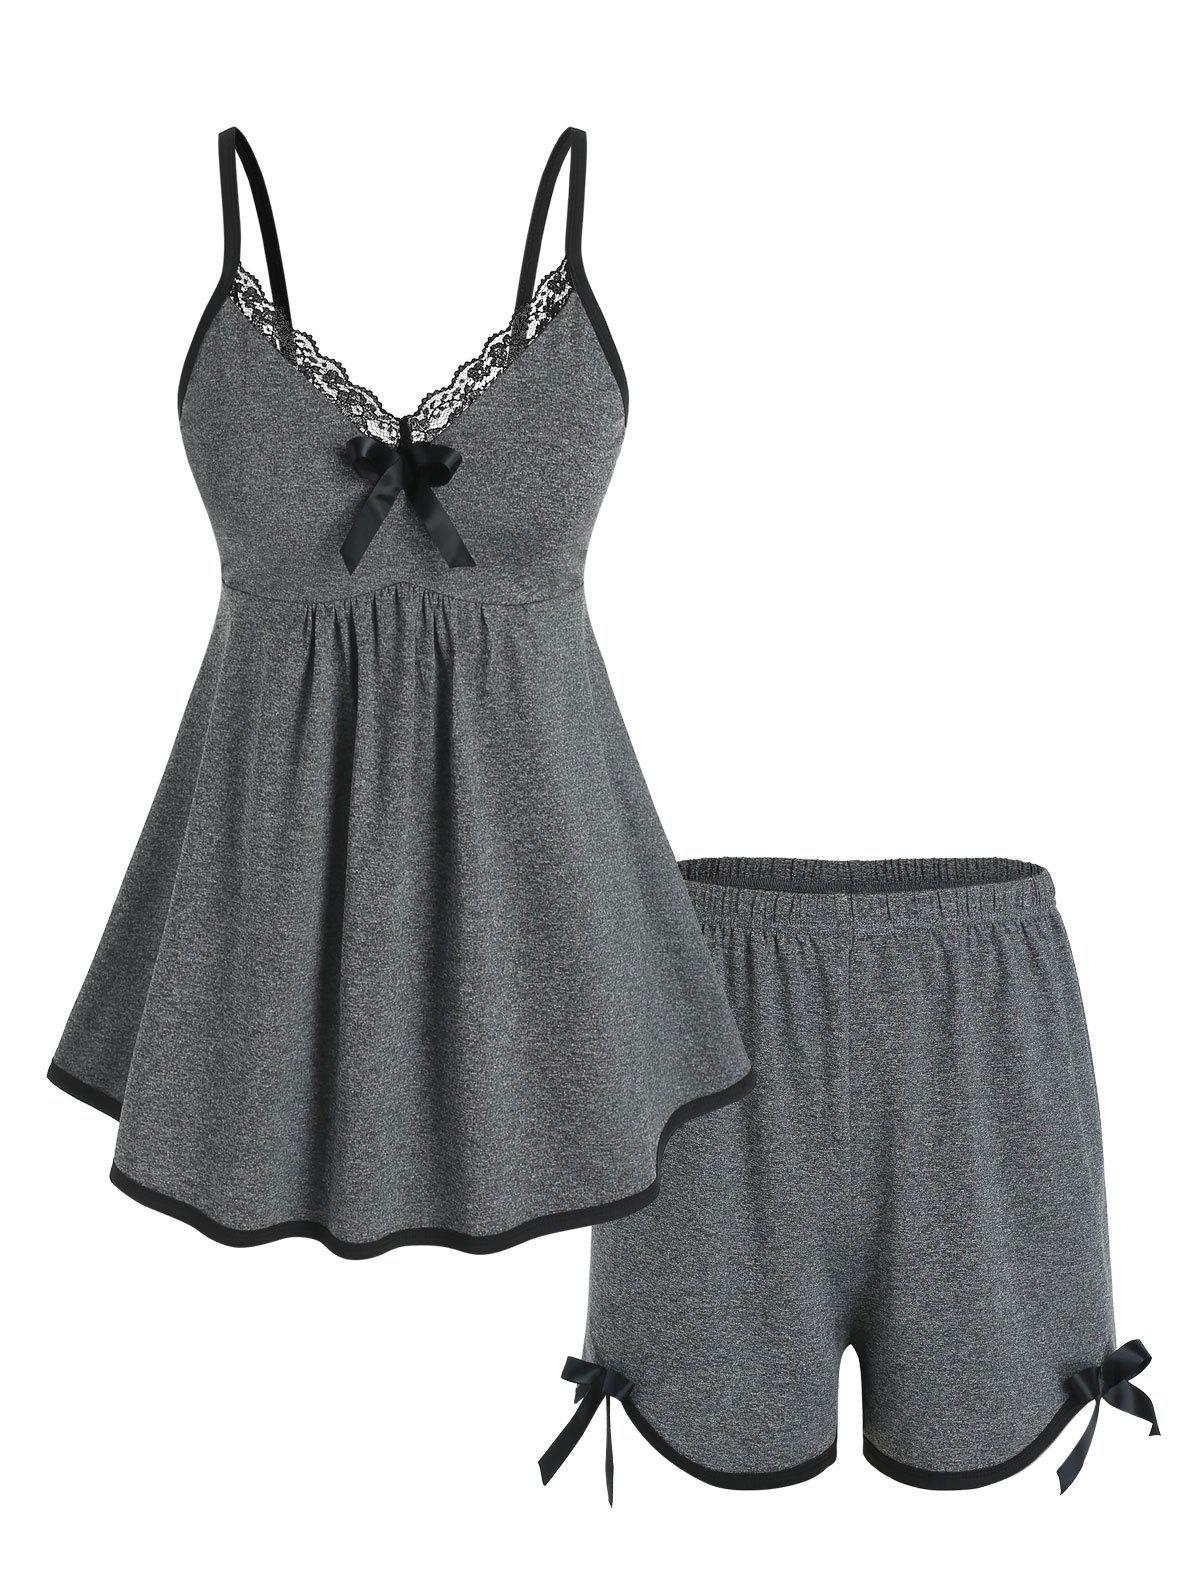 Plus Size Lace Trim Piping Pajama Cami Top and Shorts Set - DARK GRAY 3X